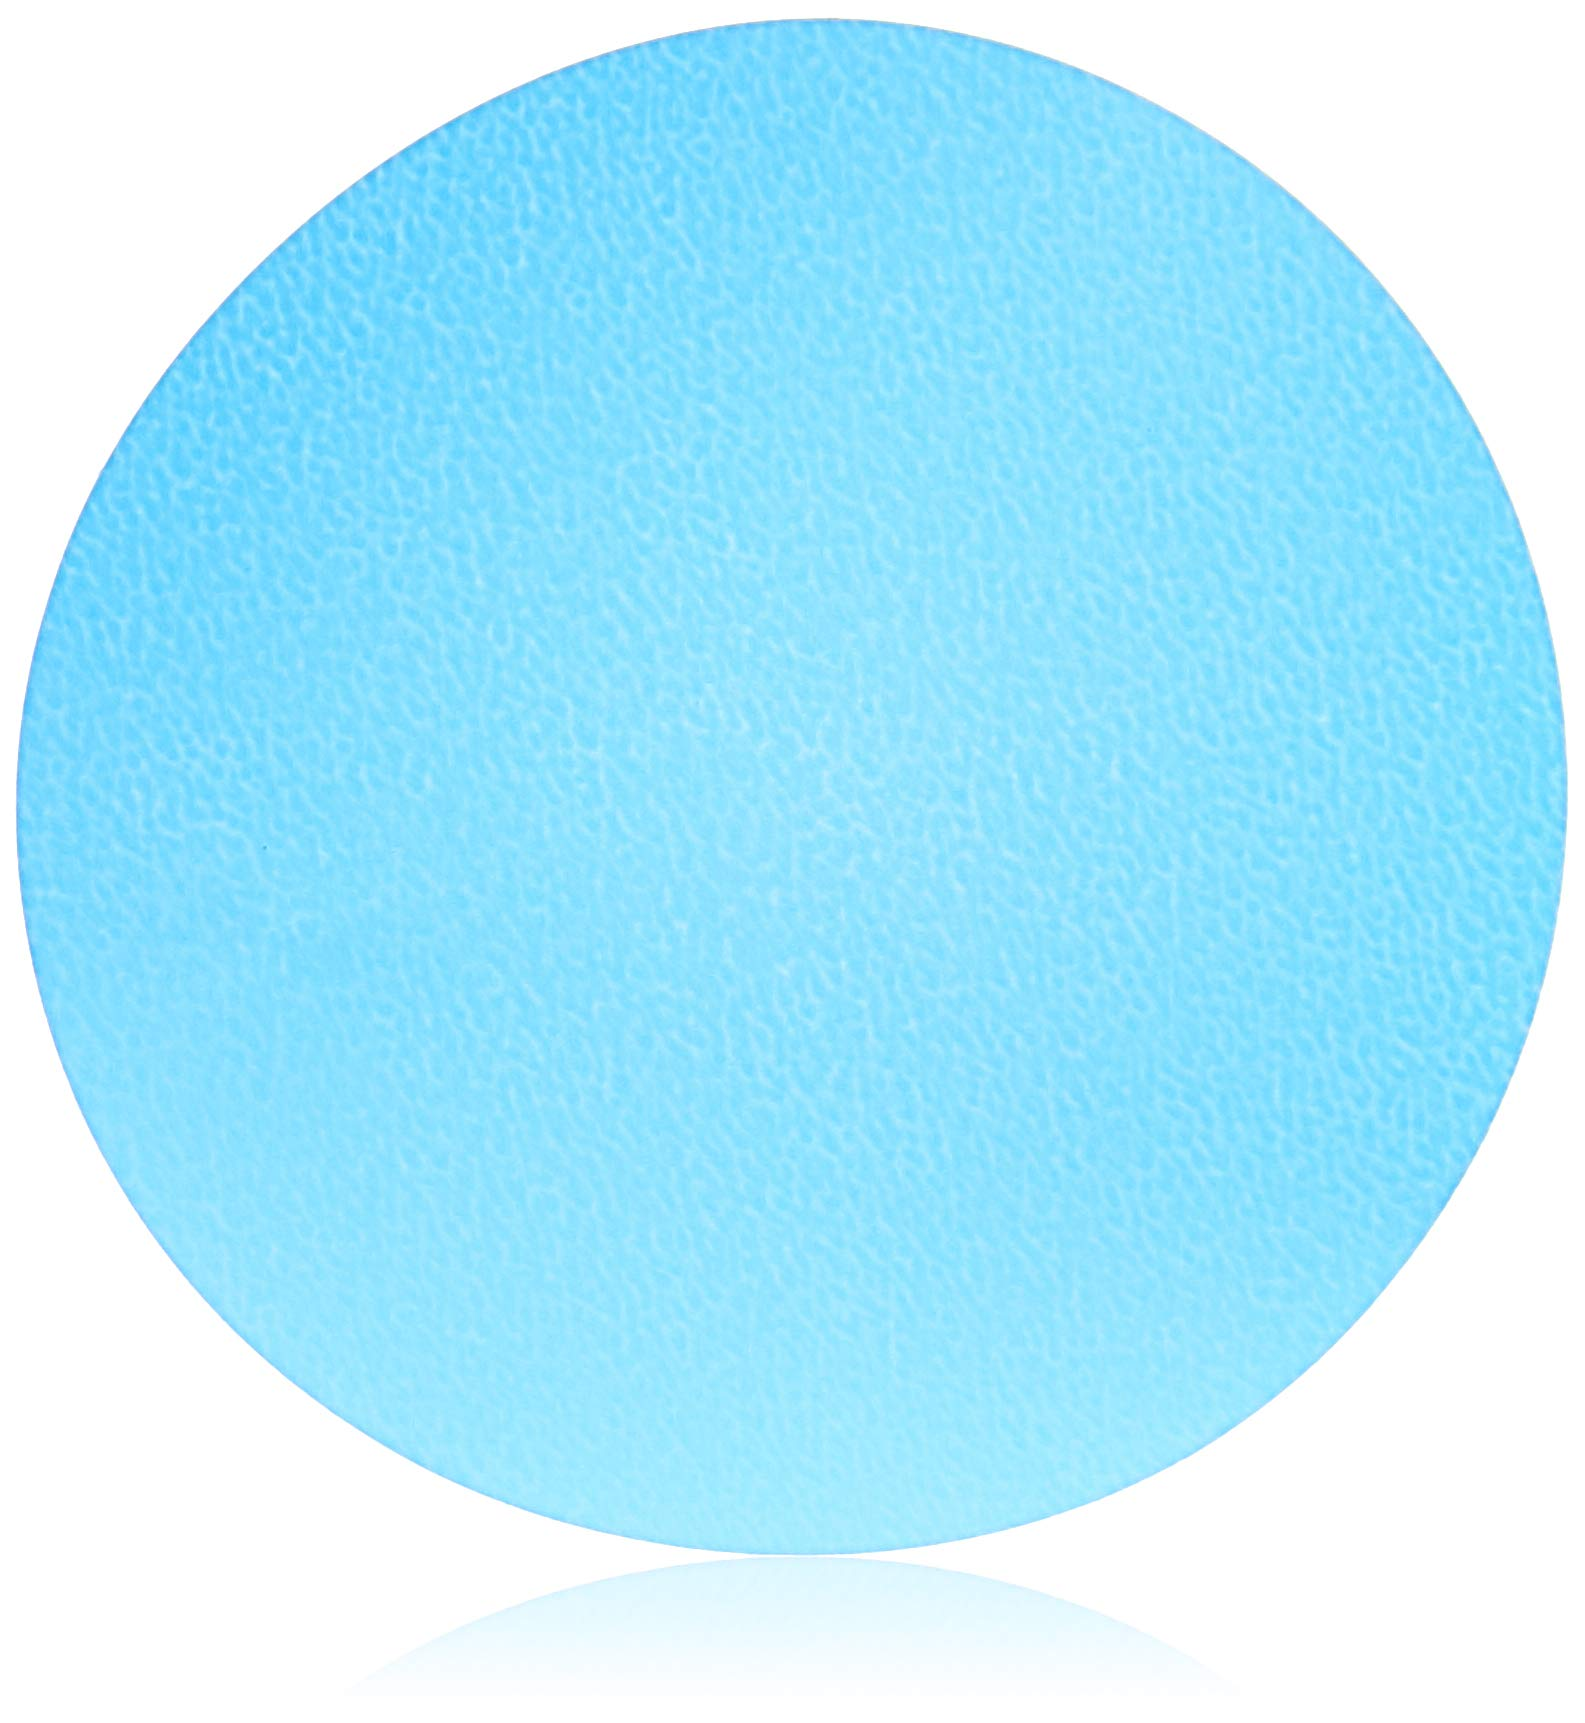 Mettoo Baby Blue Body Foil Festival Pro, 1000 Count by Mettoo